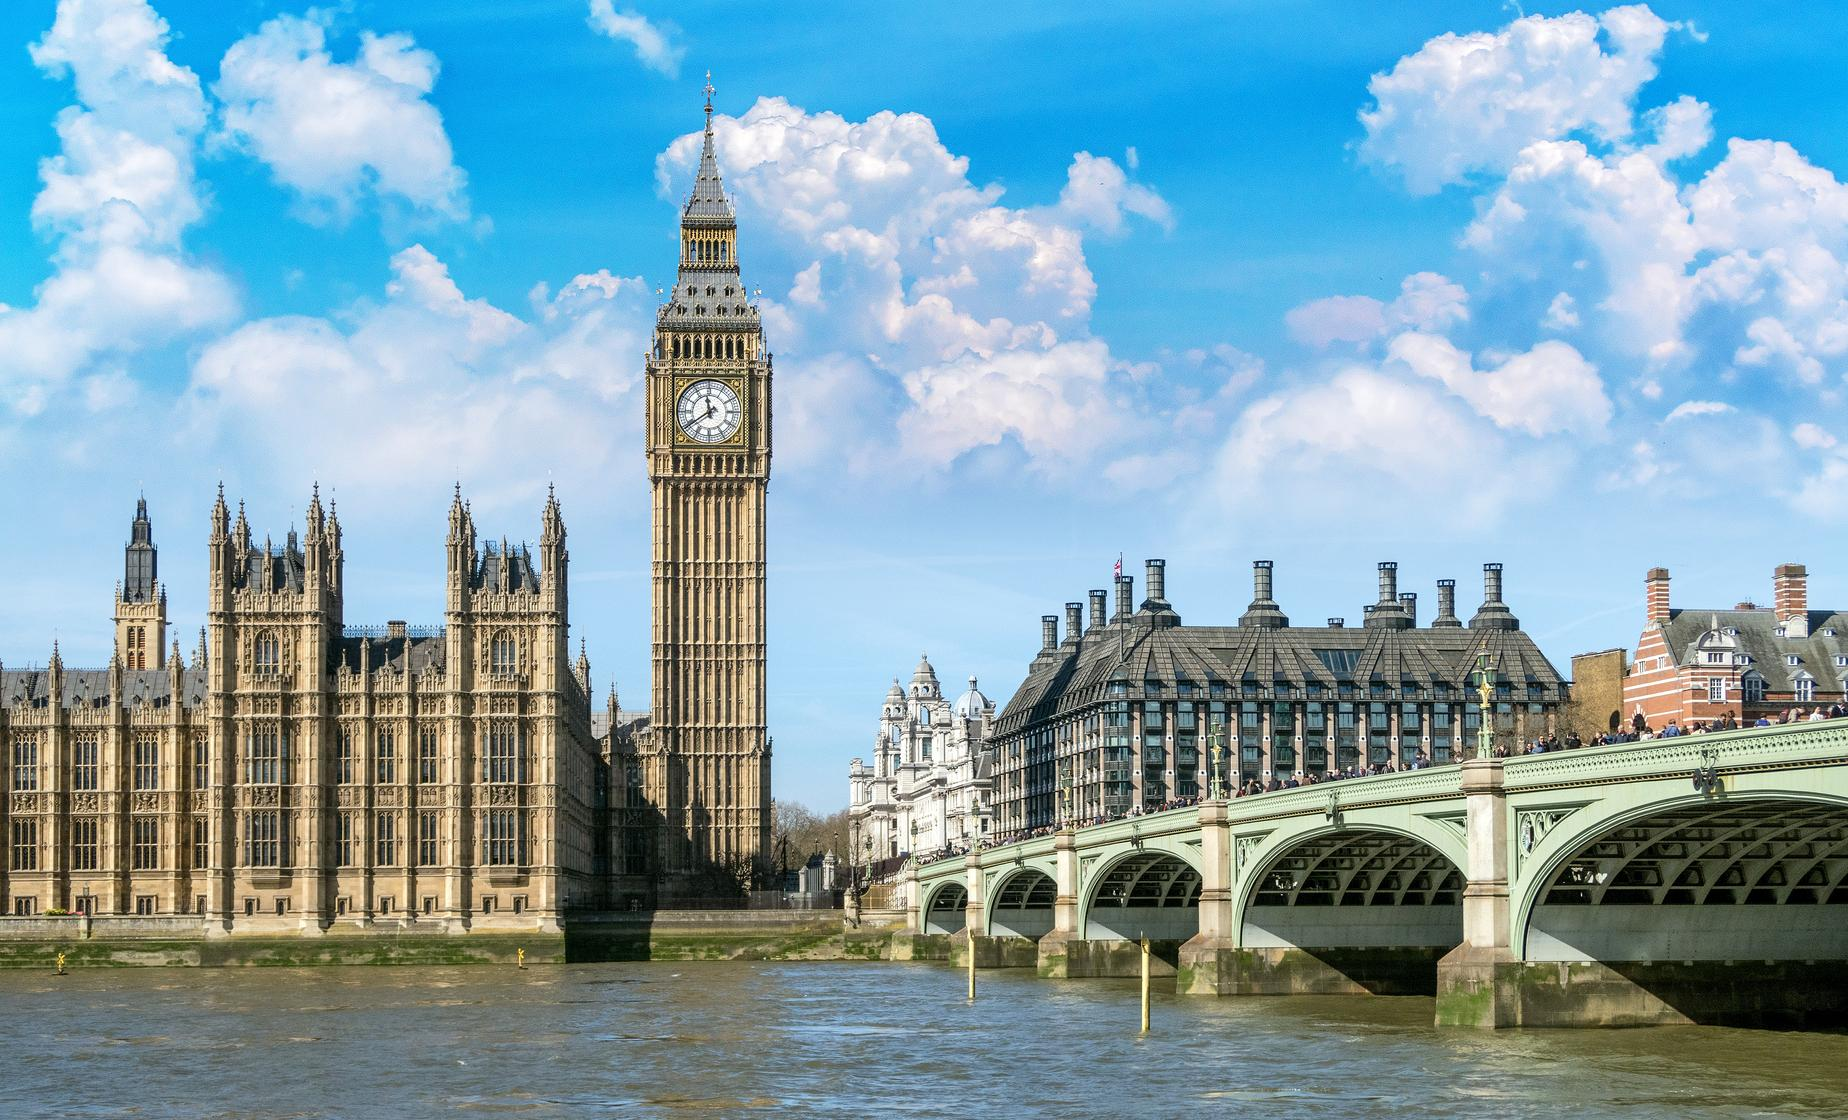 Europe Shore Excursions in London | City London Eye Flight Sightseeing in London